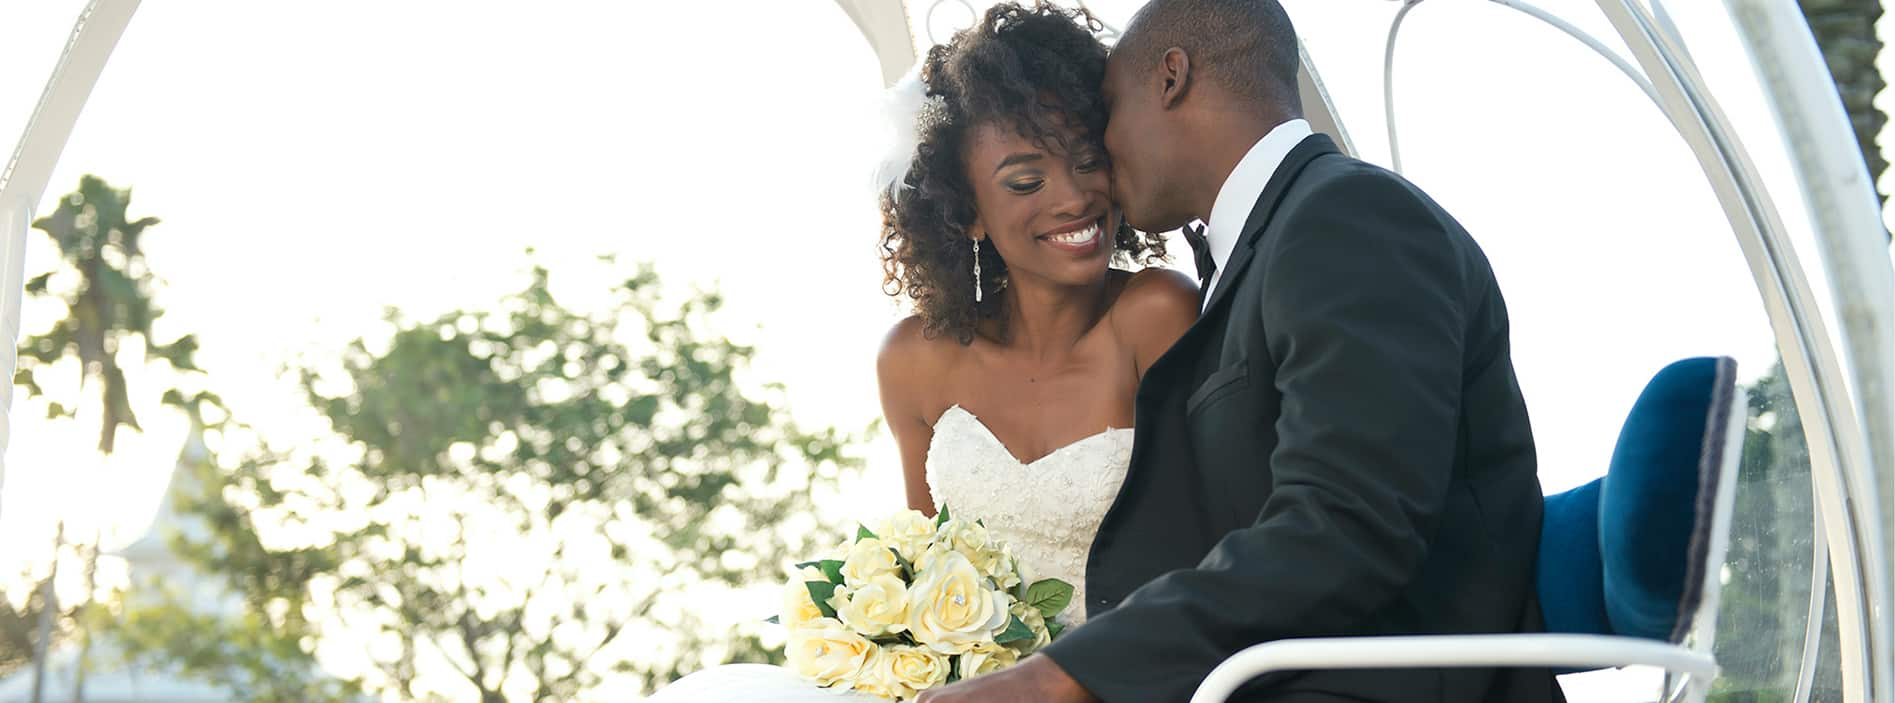 Couple riding on Cinderella Coach and smiling at each other on wedding day